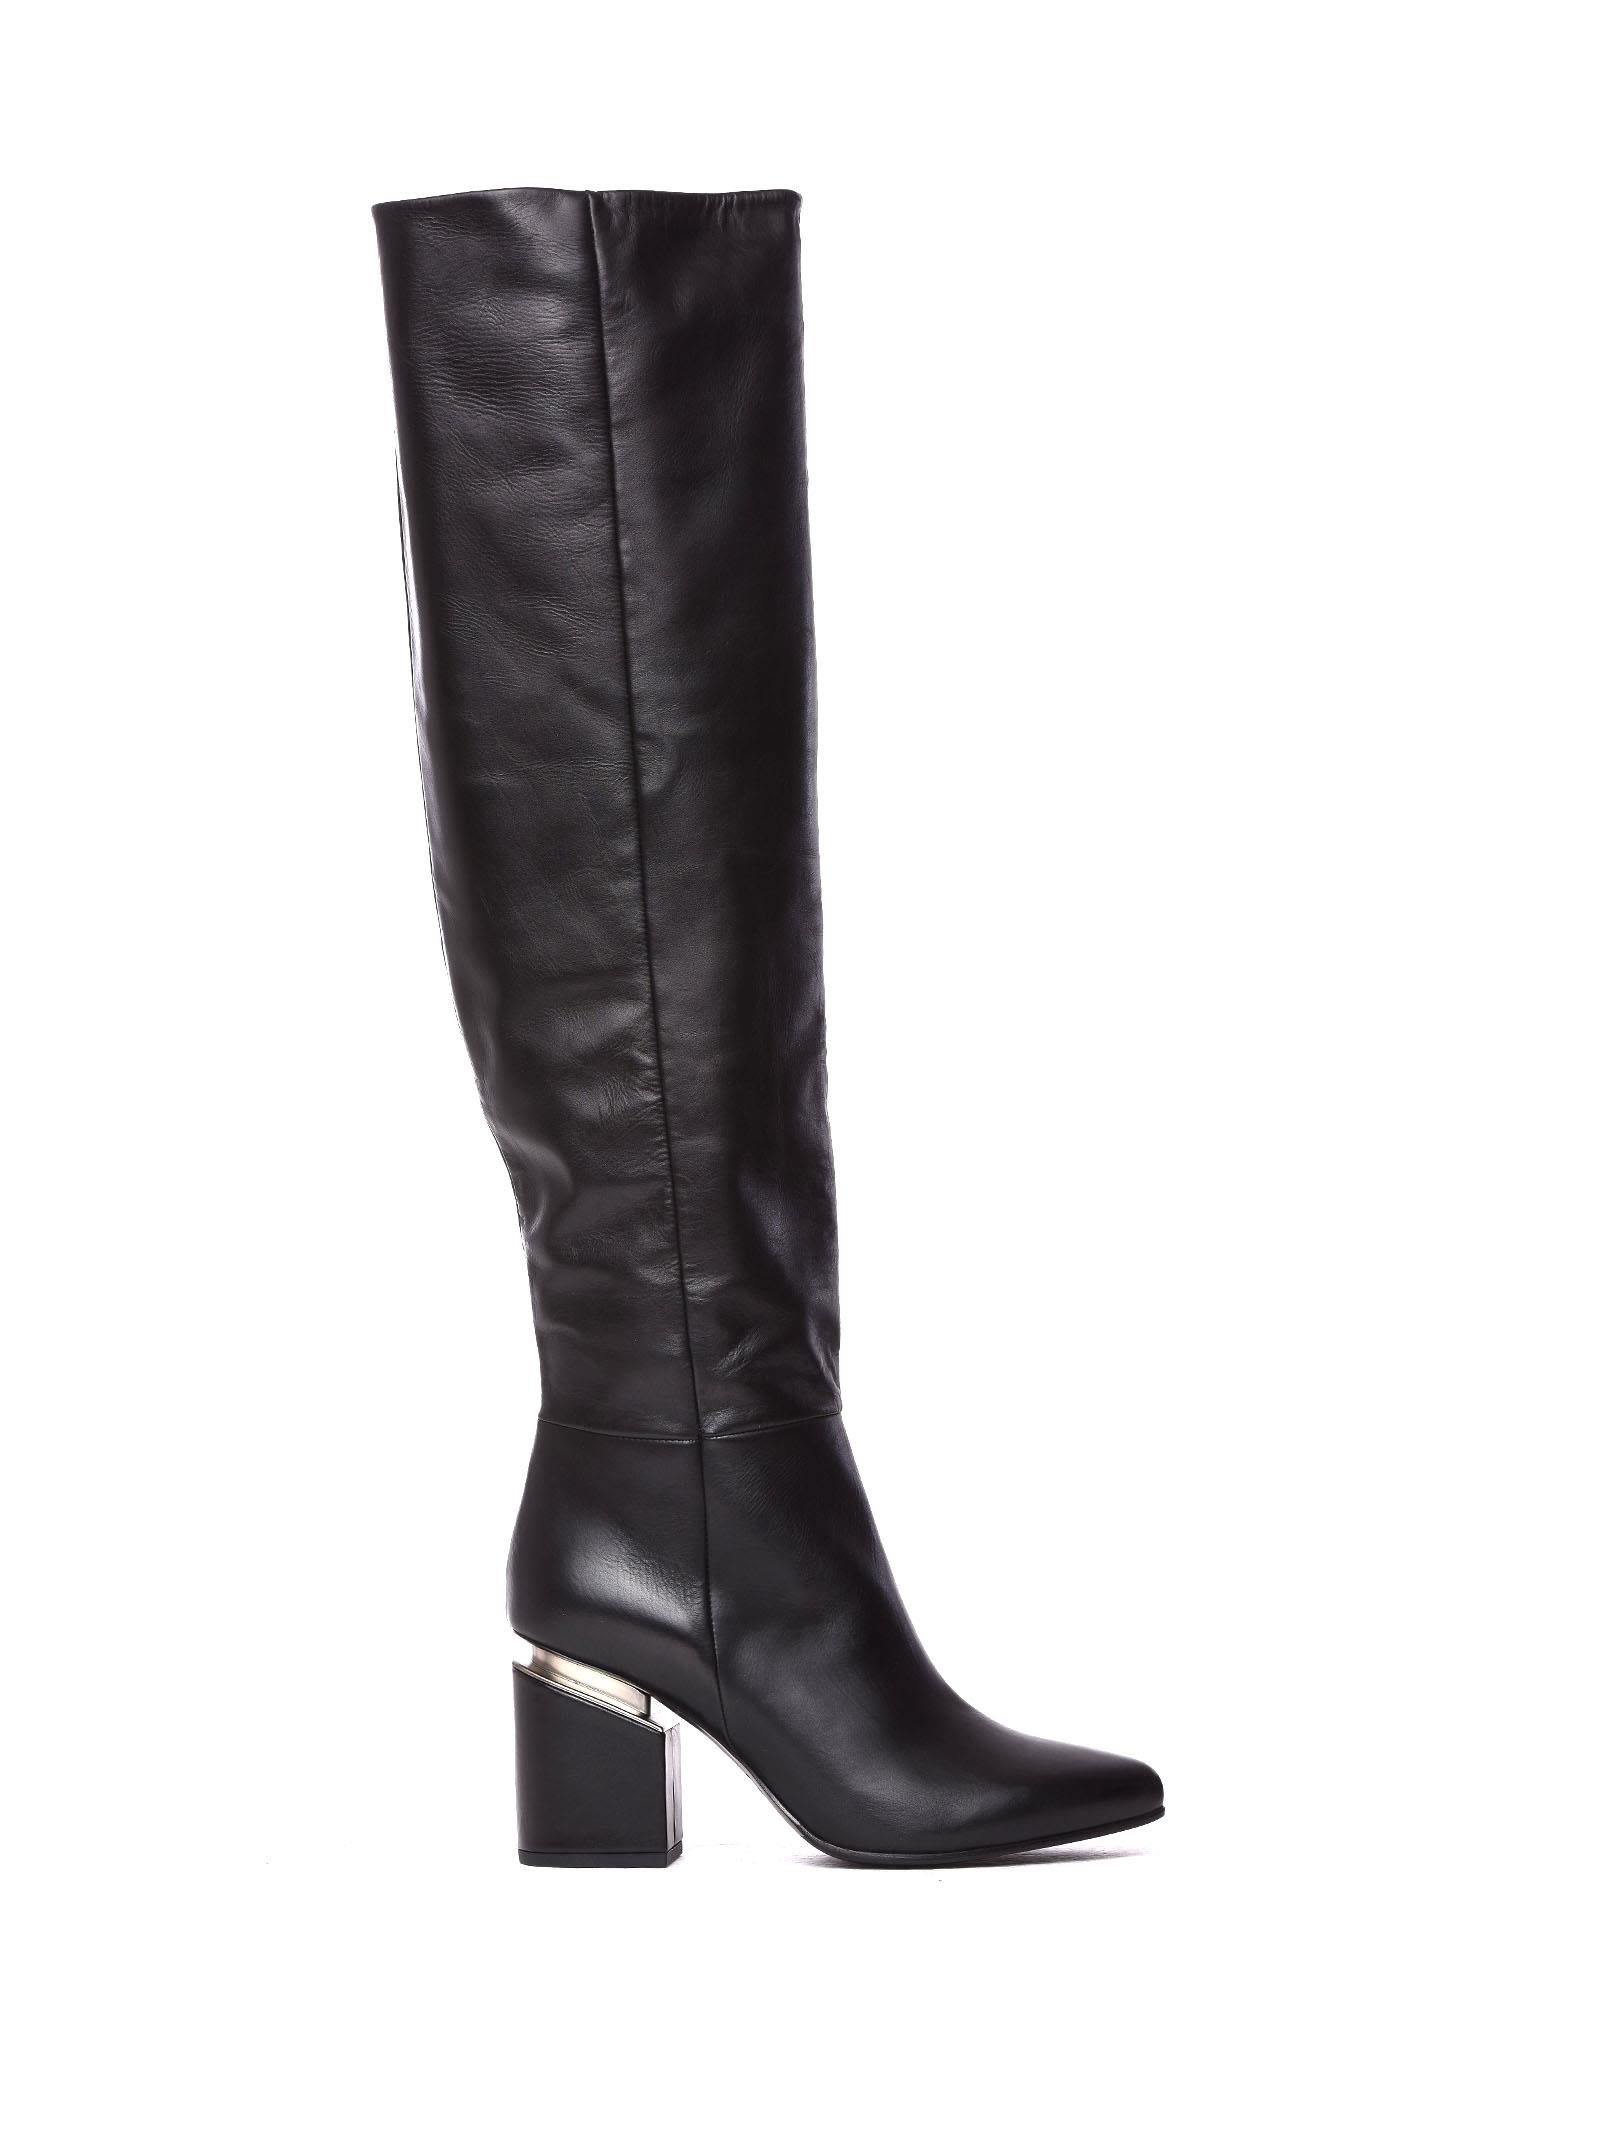 VIC MATIE Black Leather Stove Pipe Boots With Suspended Heel in Nero